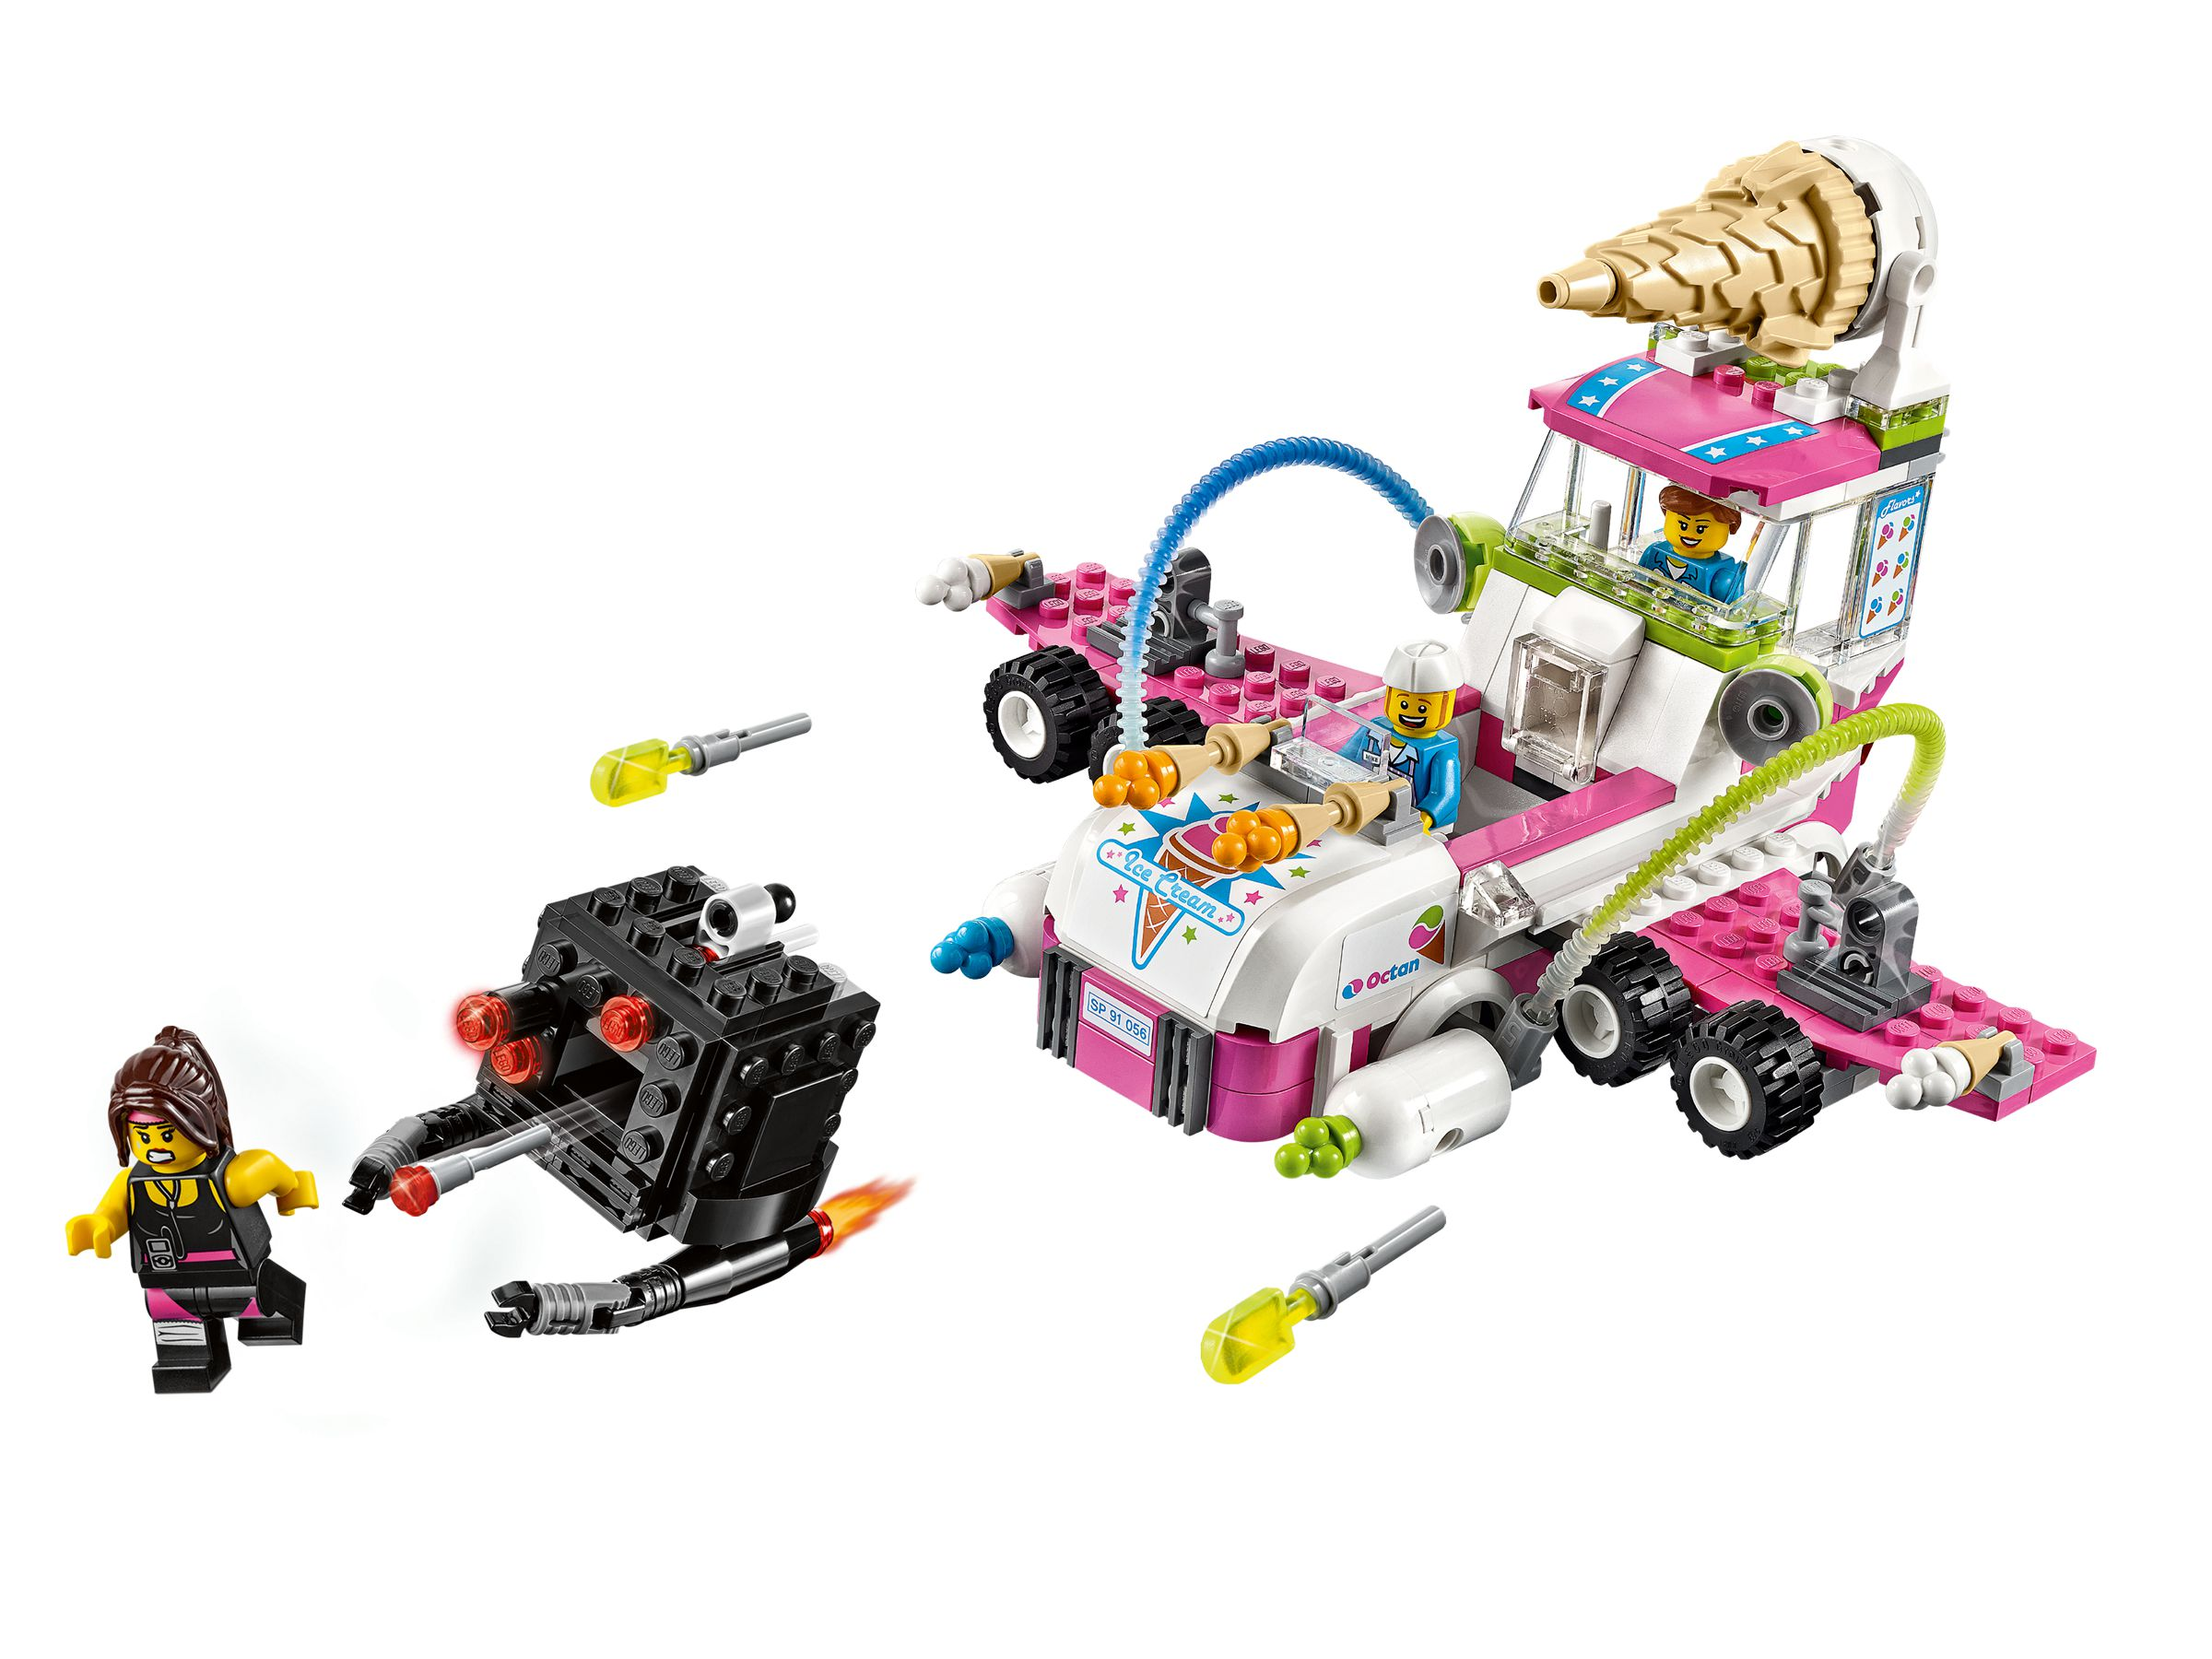 LEGO The LEGO Movie 70804 Eiscremewagen LEGO_70804.jpg